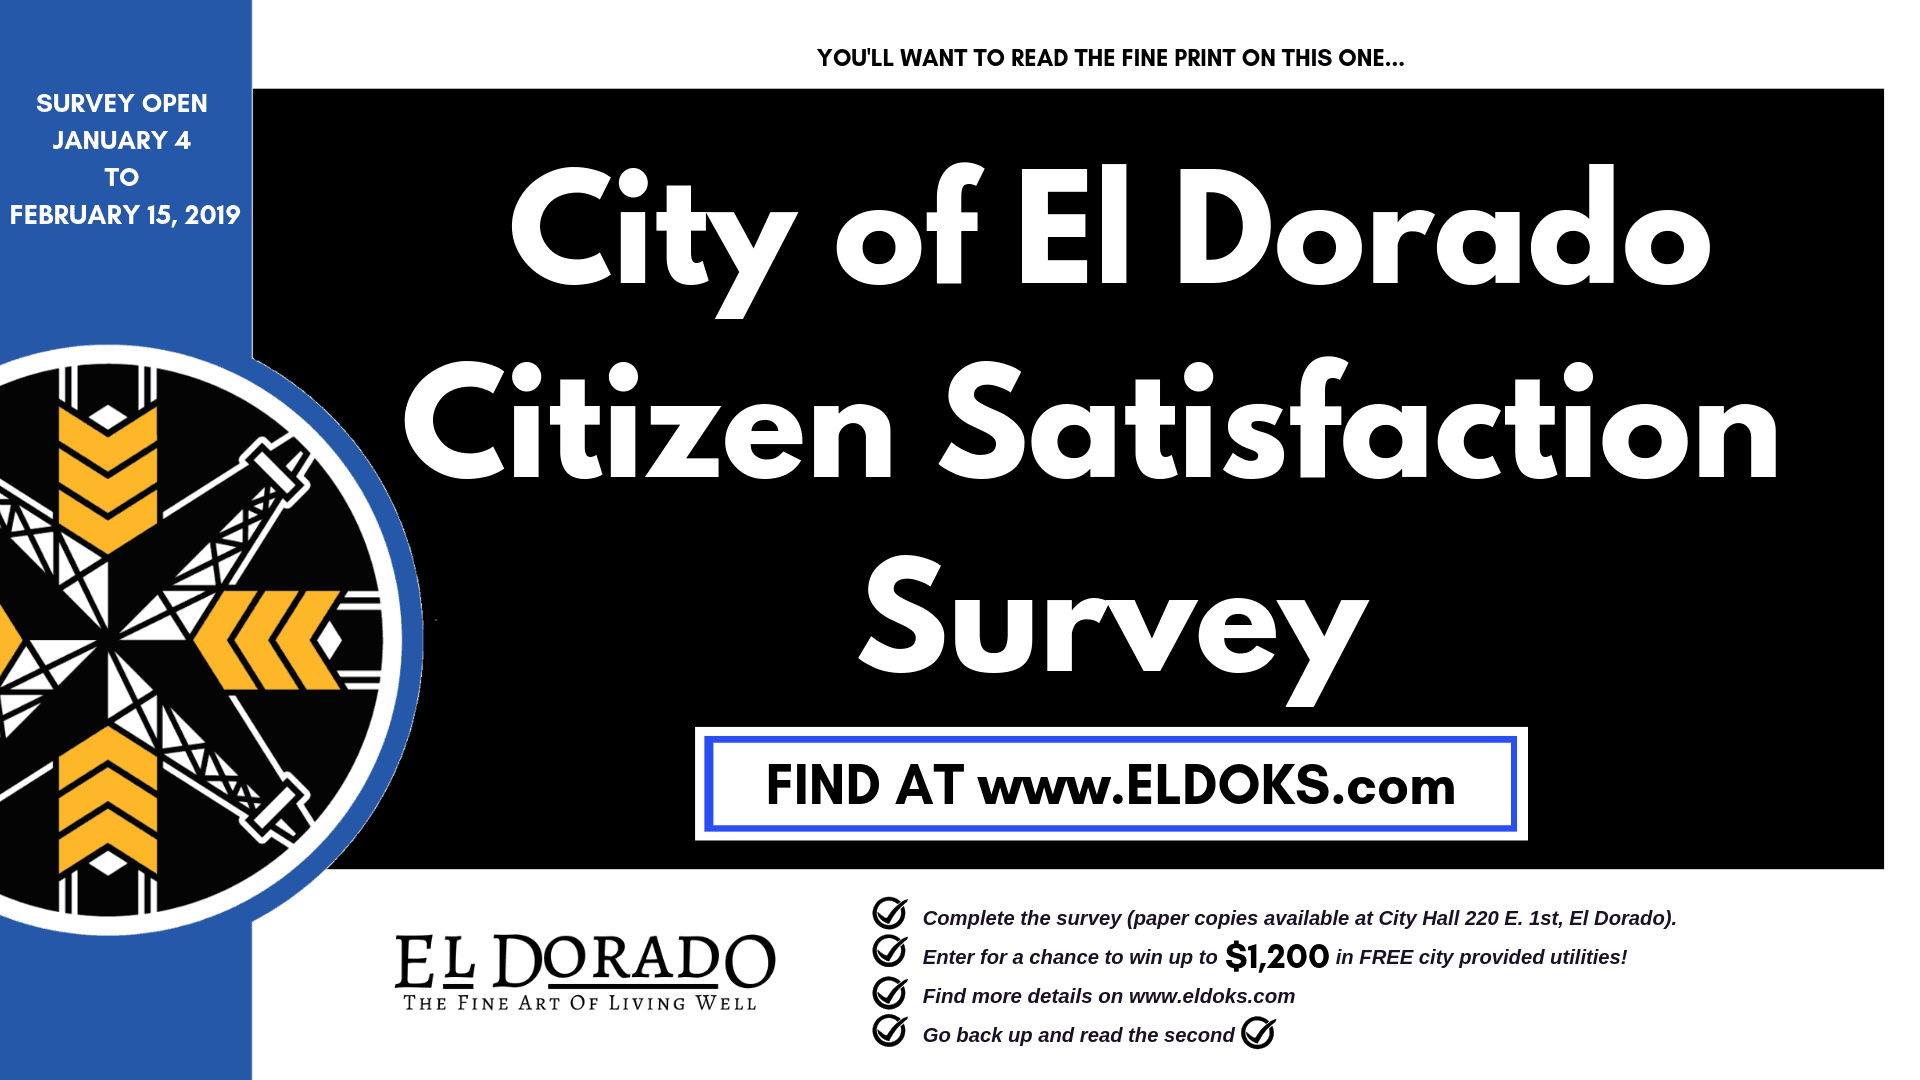 City of El Dorado Citizen Satisfaction Survey (5)